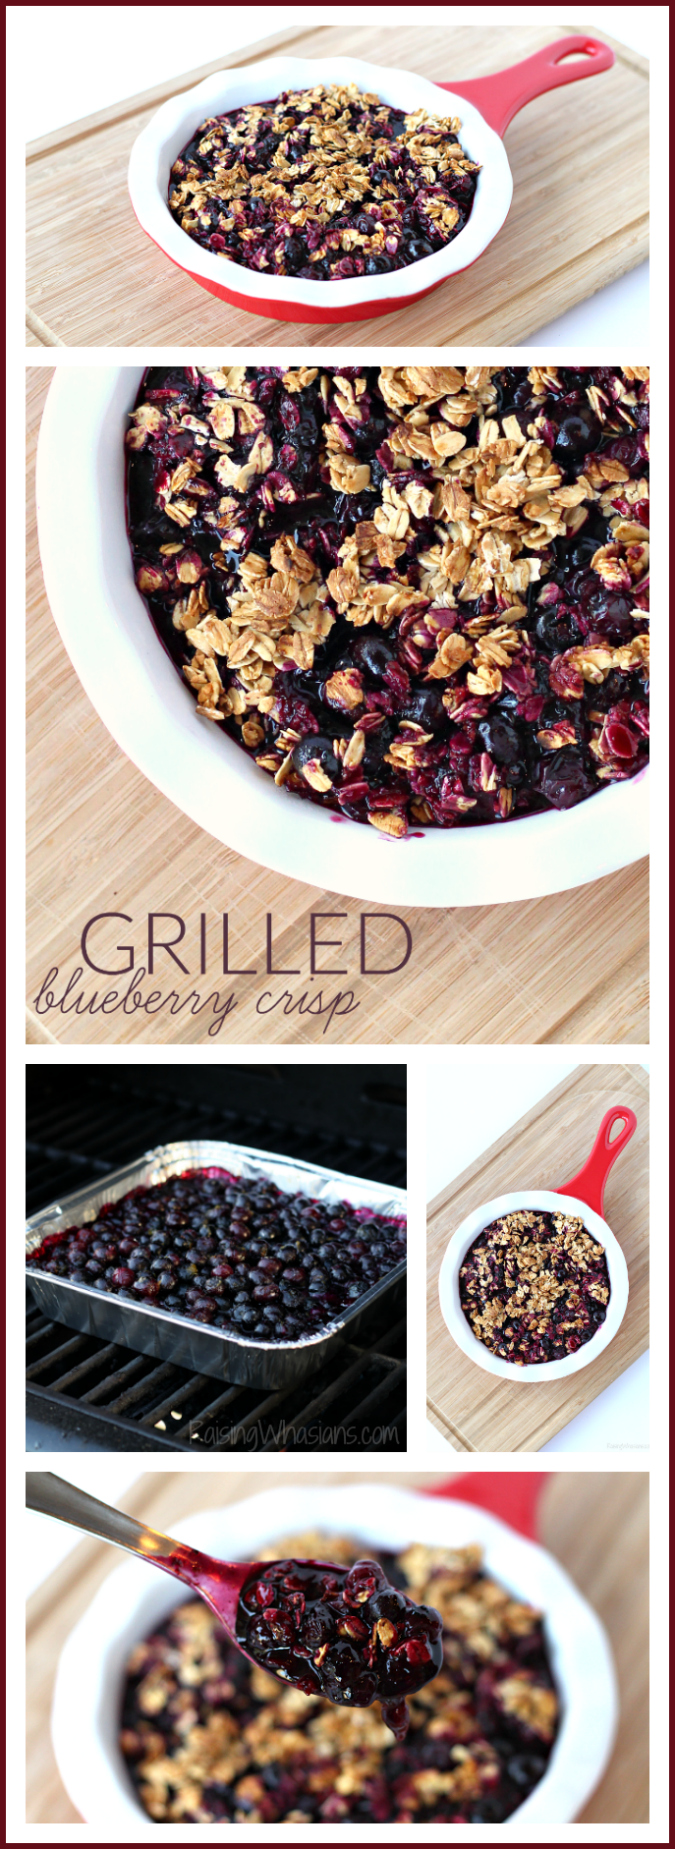 Easy grilled blueberry crisp pinterest Fire up the grill for this Easy Grilled Blueberry Crisp Recipe - a perfect dessert idea that's gluten-free, allergy friendly and Fresh from Florida! #Recipe #AllergyFriendlyRecipe #Recipe #FreshFromFlorida #Dessert #GlutenFree